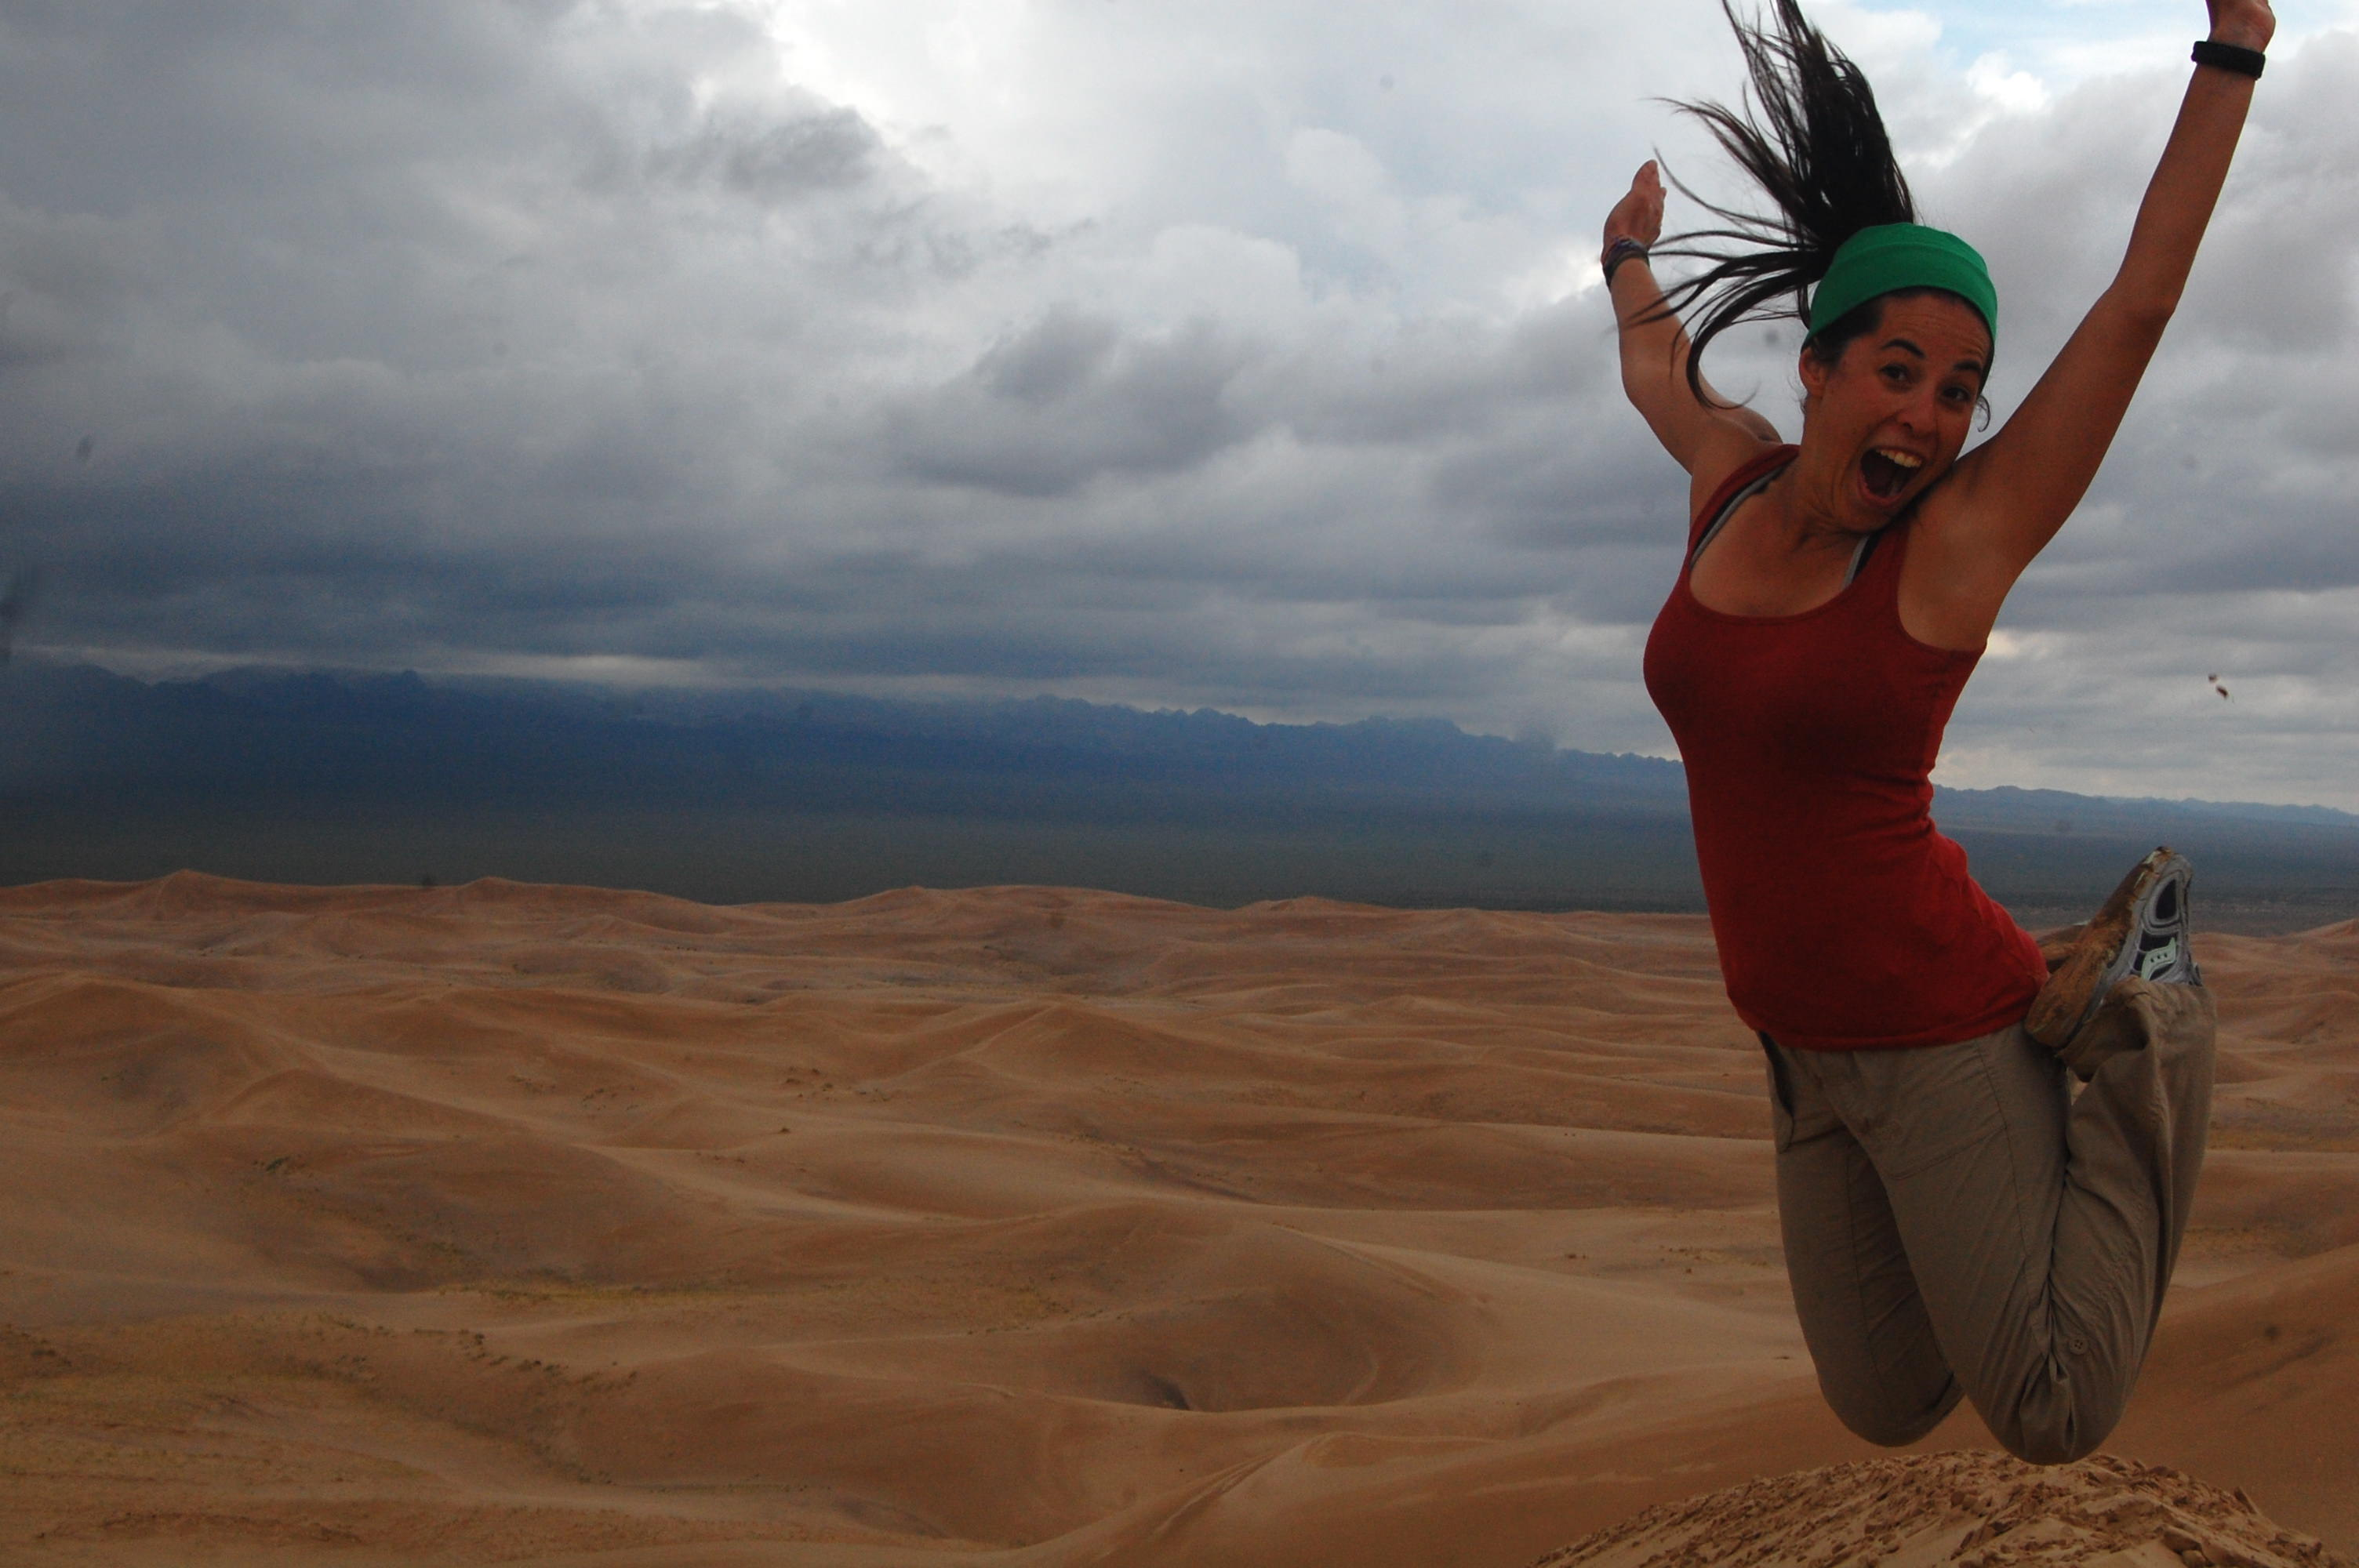 Jumping across the Gobi Desert, Mongolia